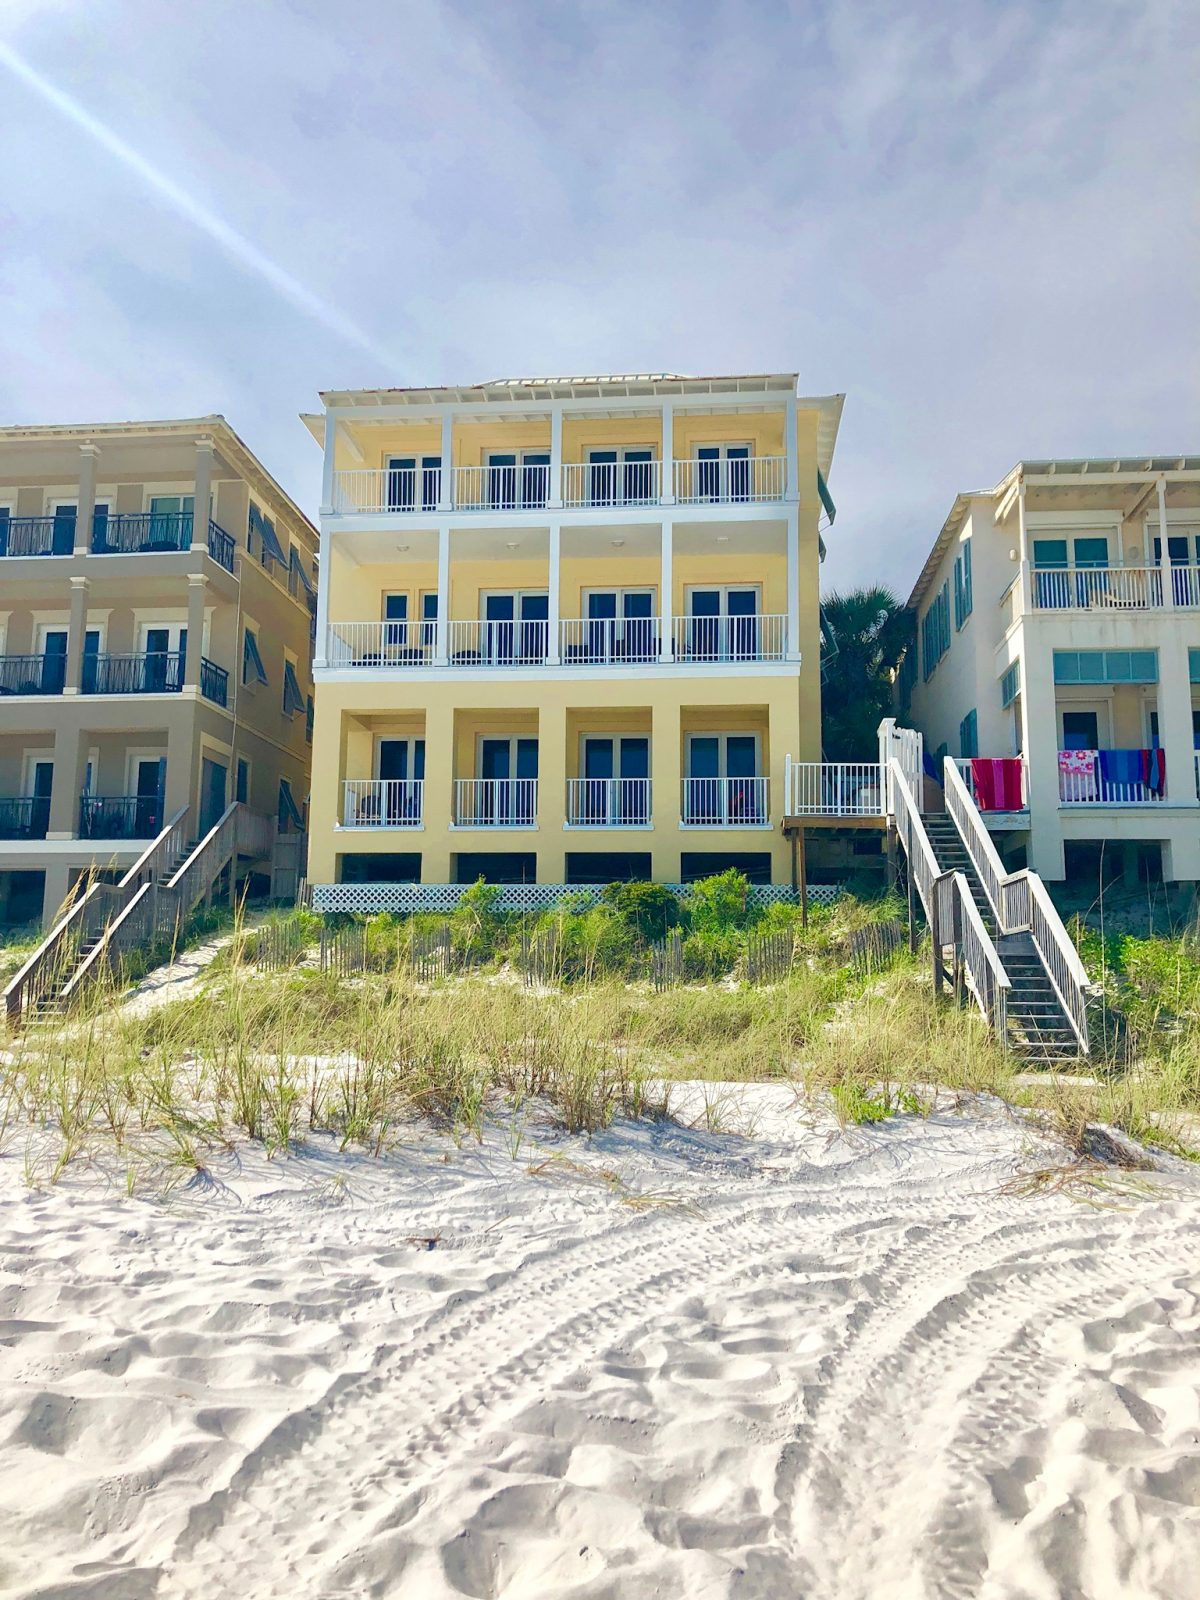 The Best Family Vacation Destinations and Travel Tips - Destin Florida Travel Guide